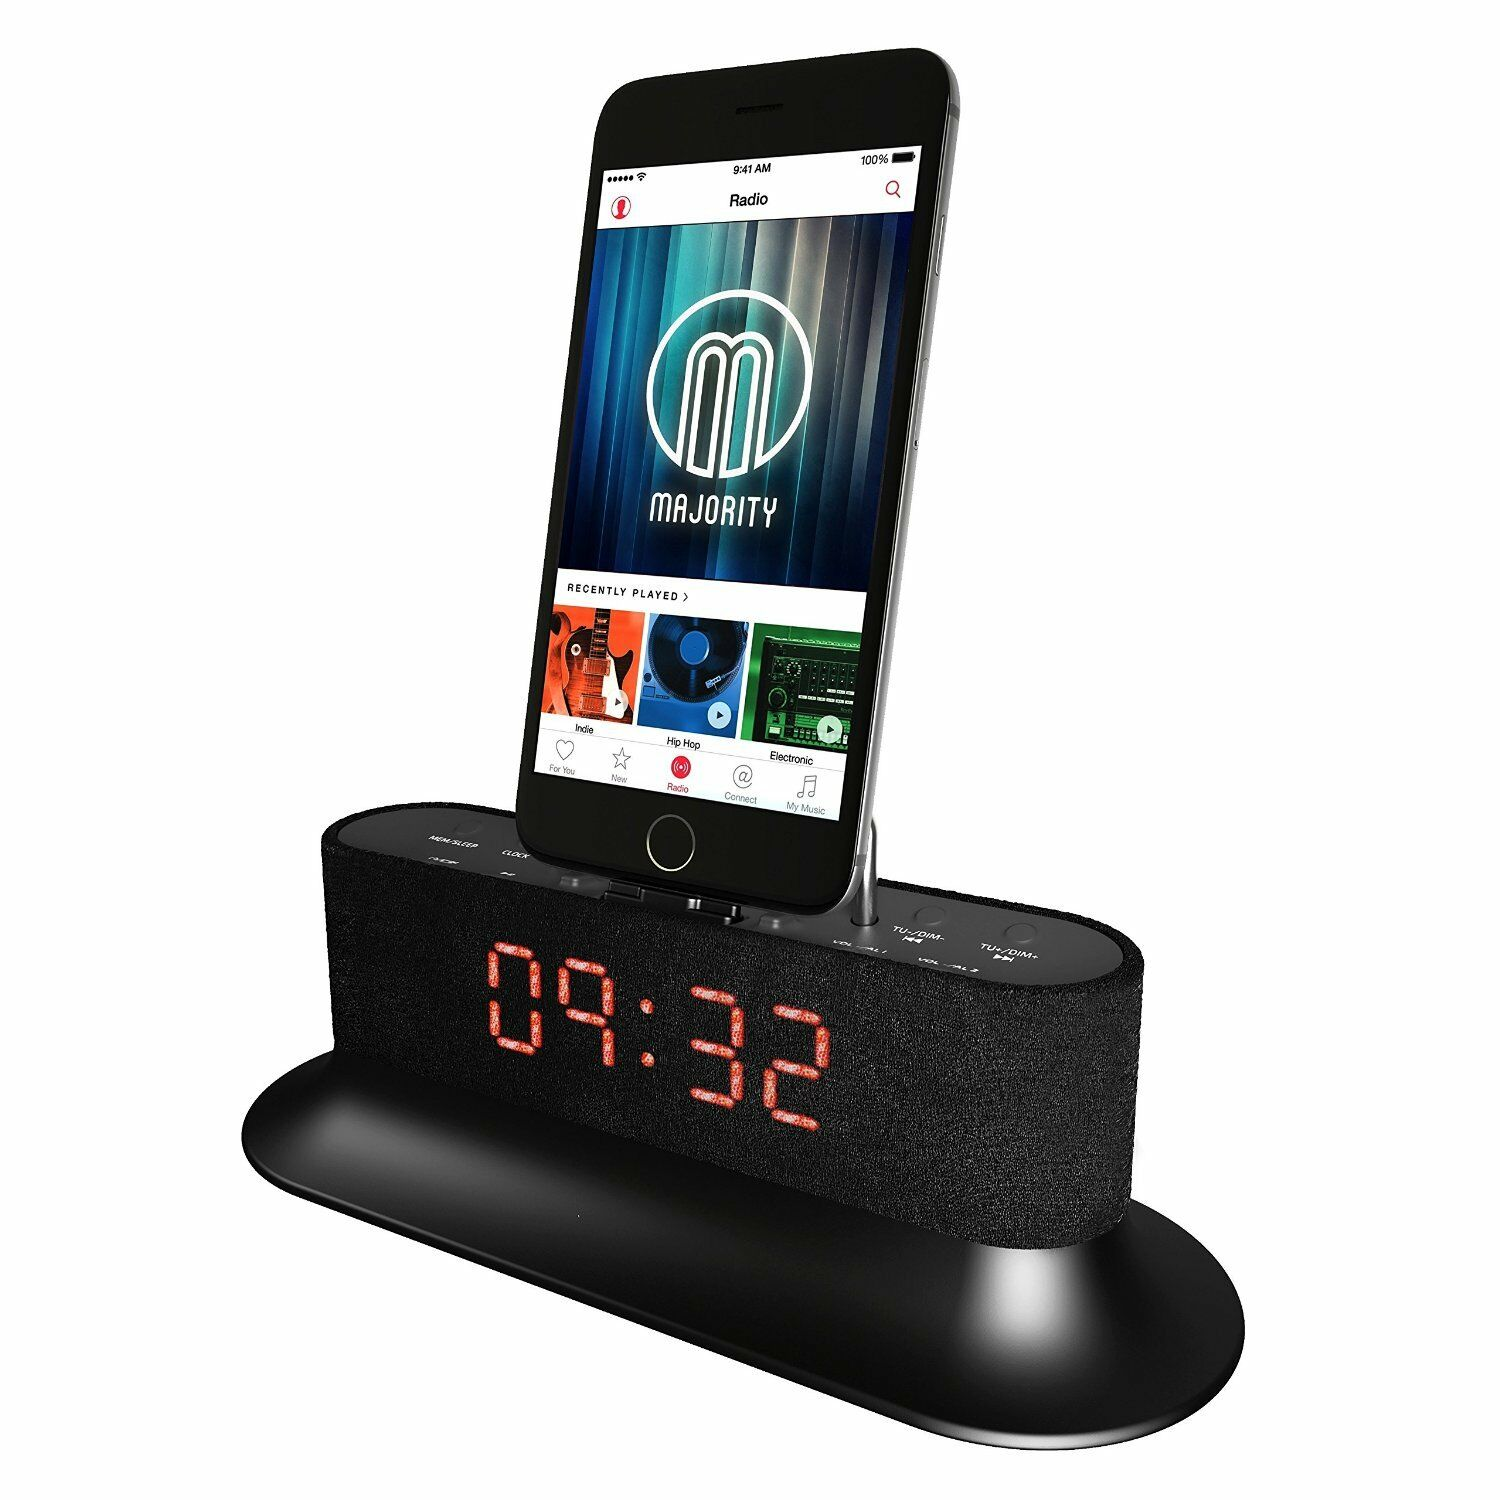 Apple Iphone Docking Station With Speakers